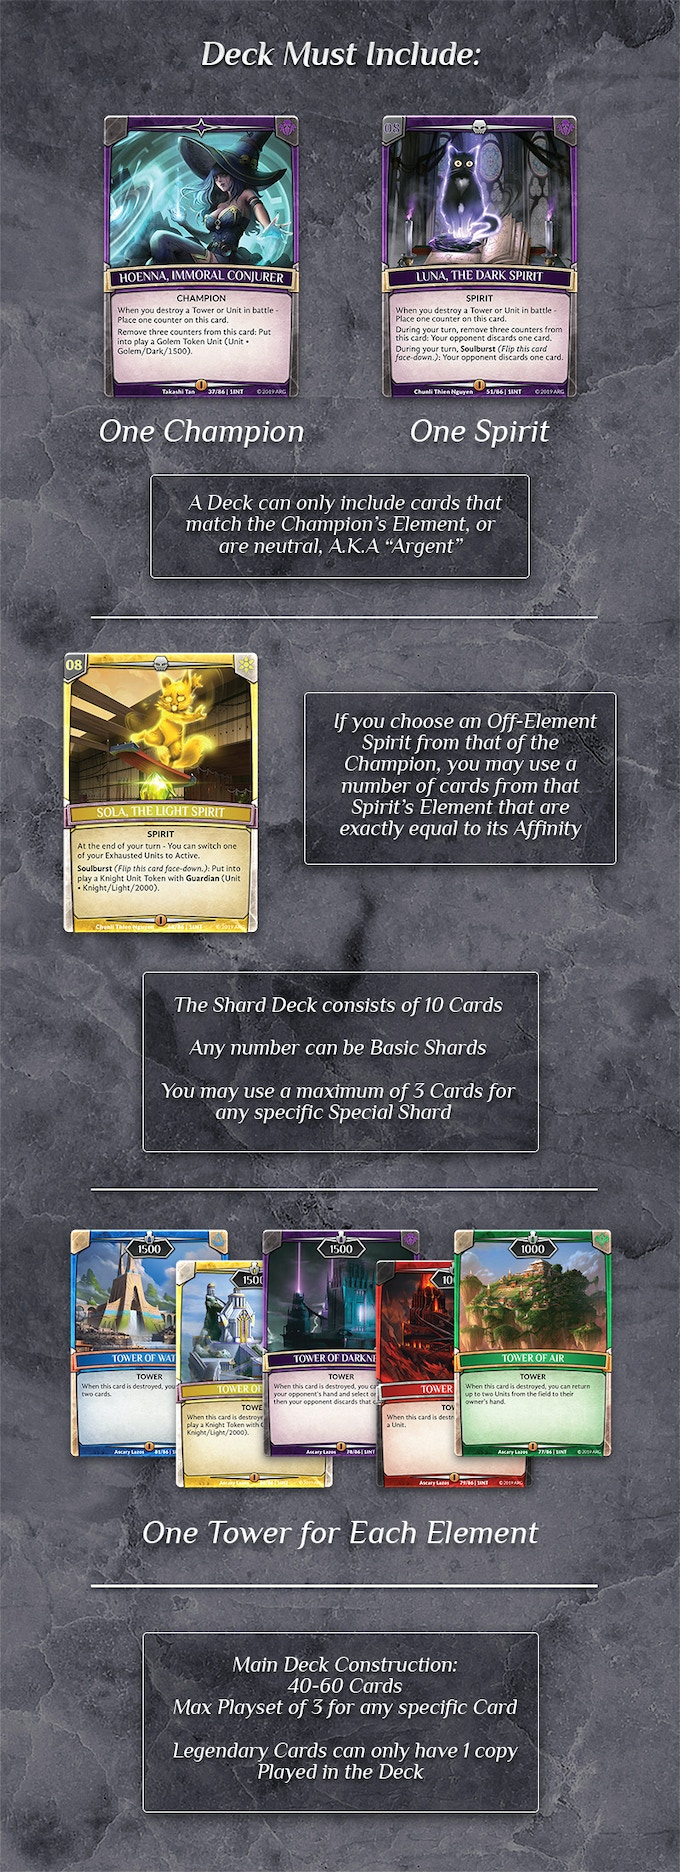 How to Construct a Deck